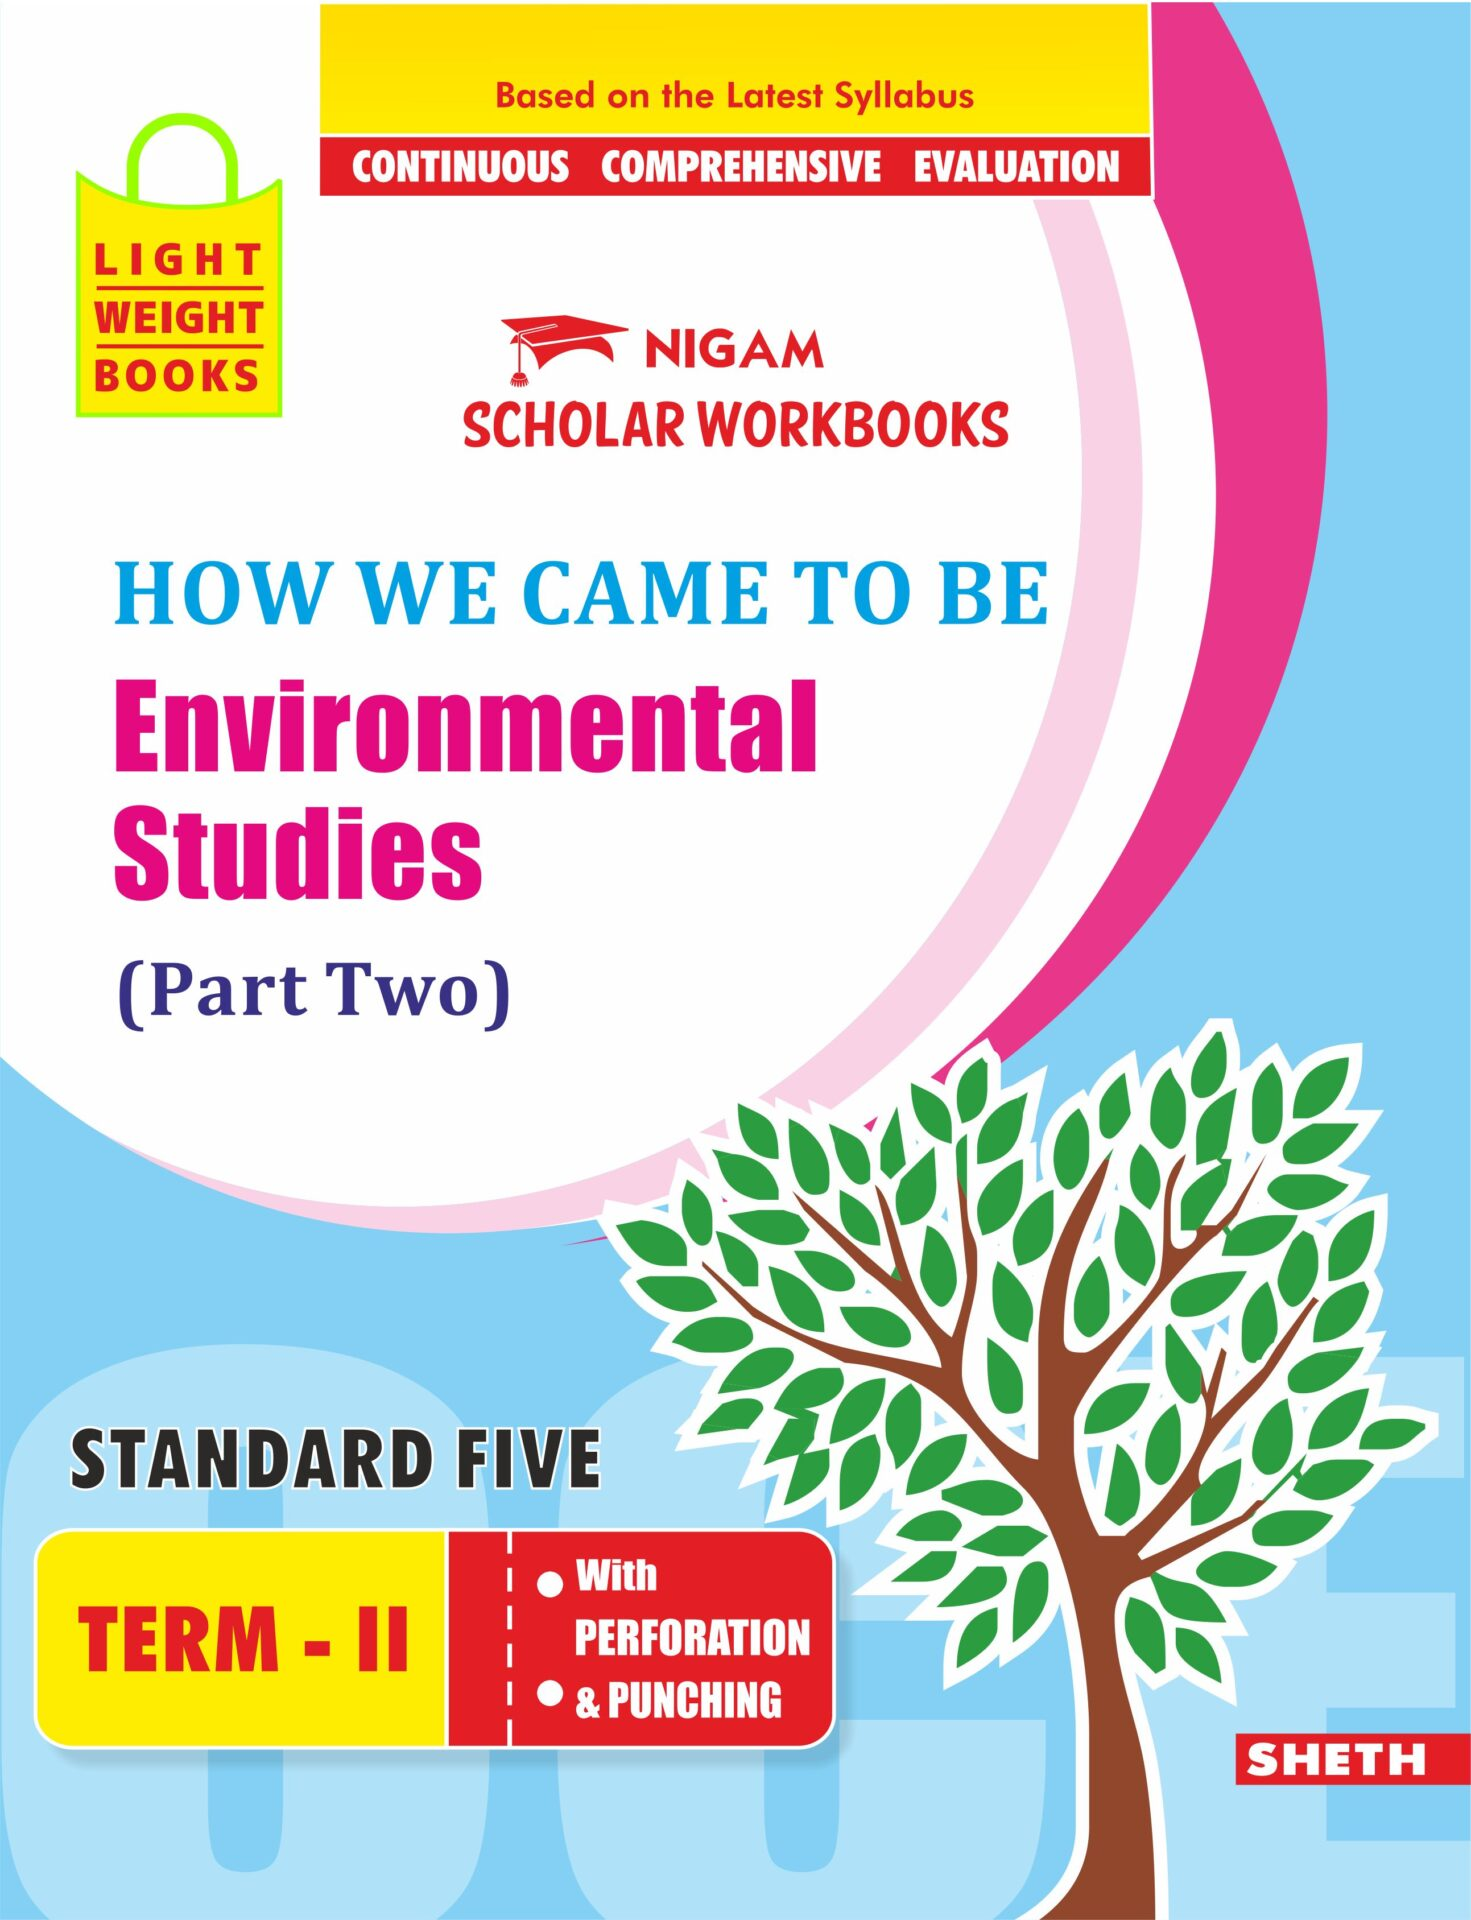 CCE Pattern Nigam Scholar Workbooks How We Came to Be Environmental Studies EVS Part Two Standard 5 Term 2 1